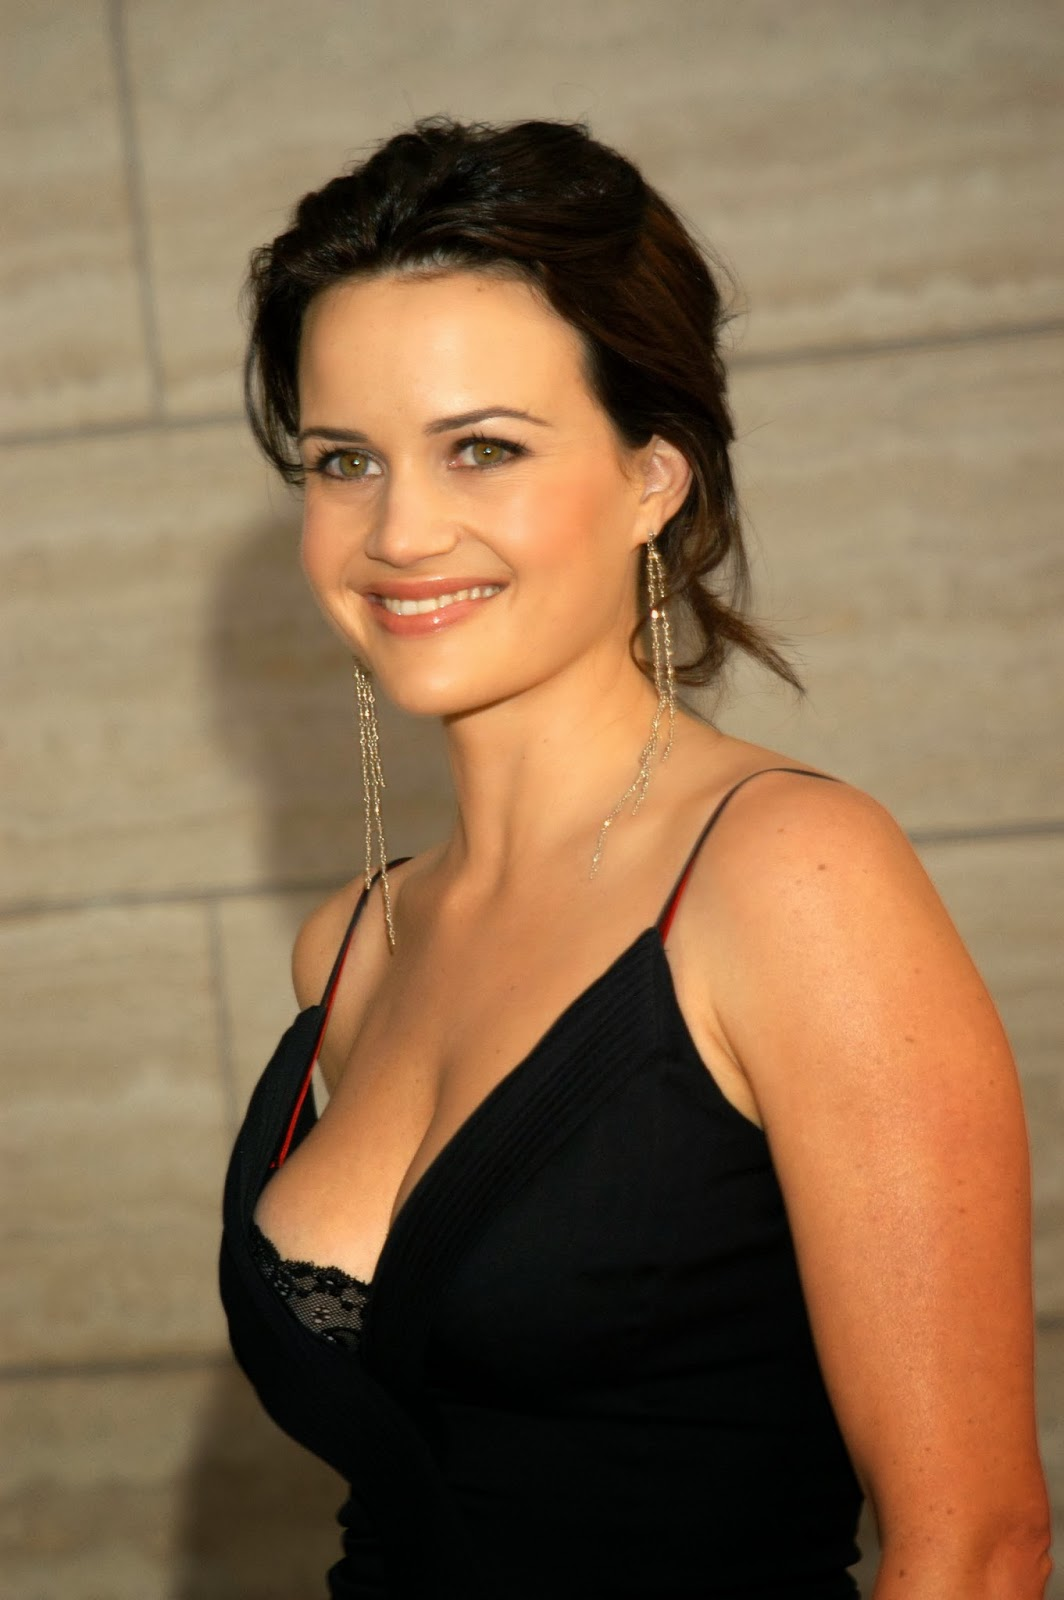 mayfairmags: Carla Gugino - American Actress - Lucille in